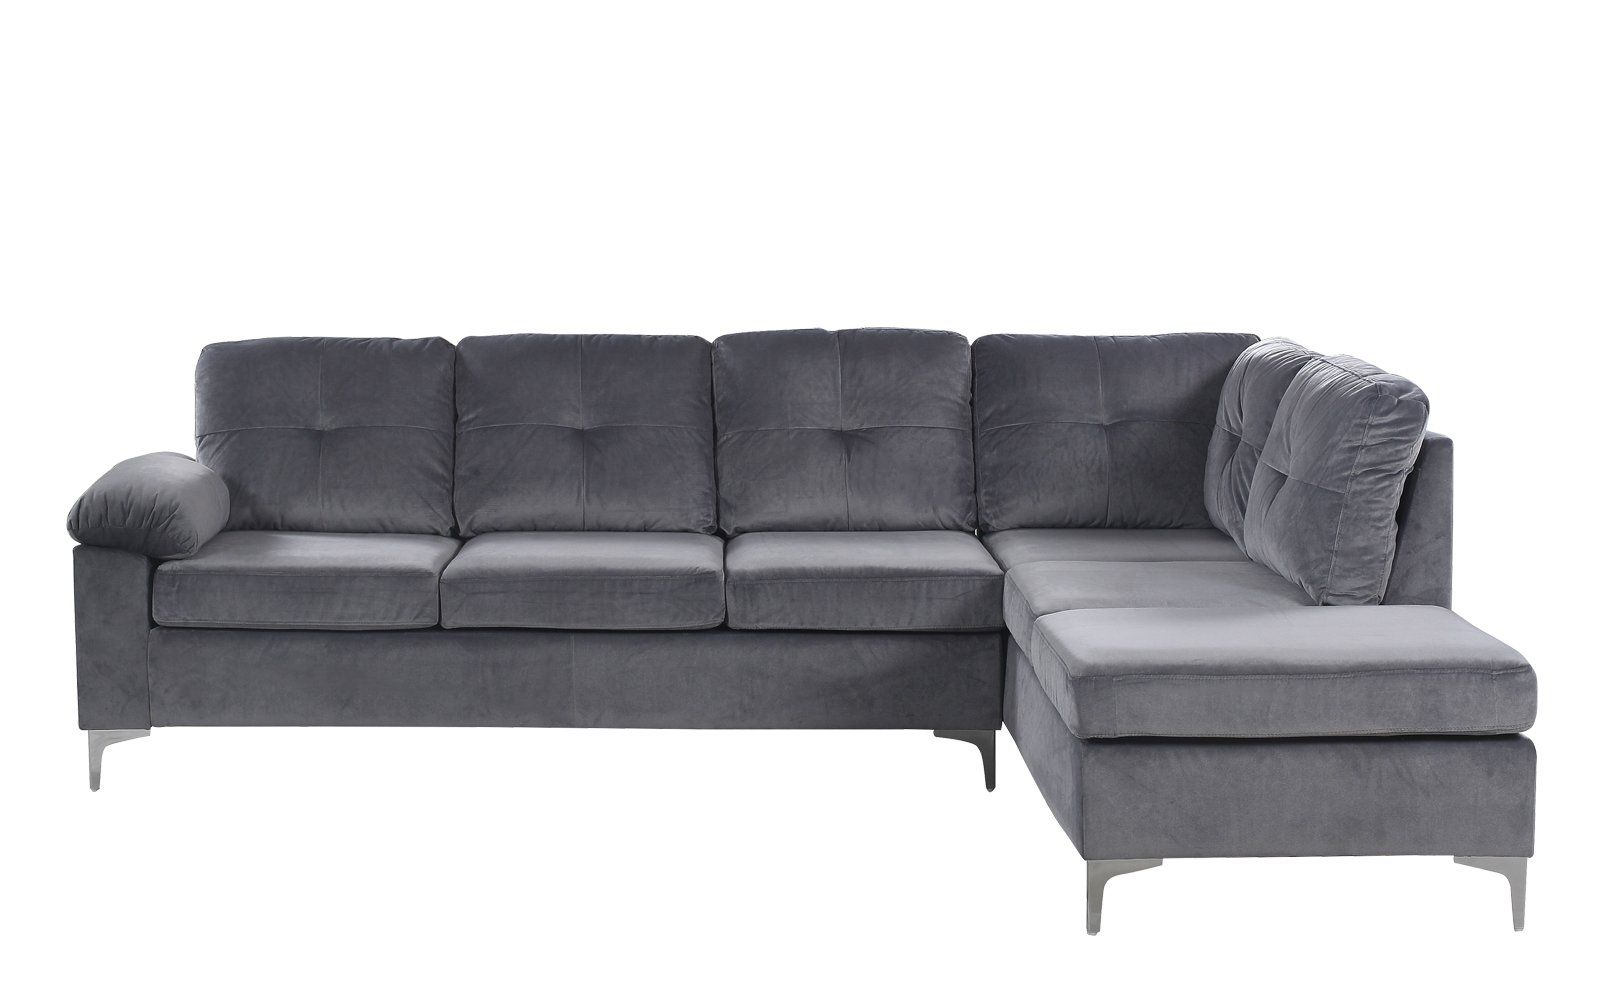 Helsinki Modern Tufted Brush Microfiber Sectional Sofa | For ...